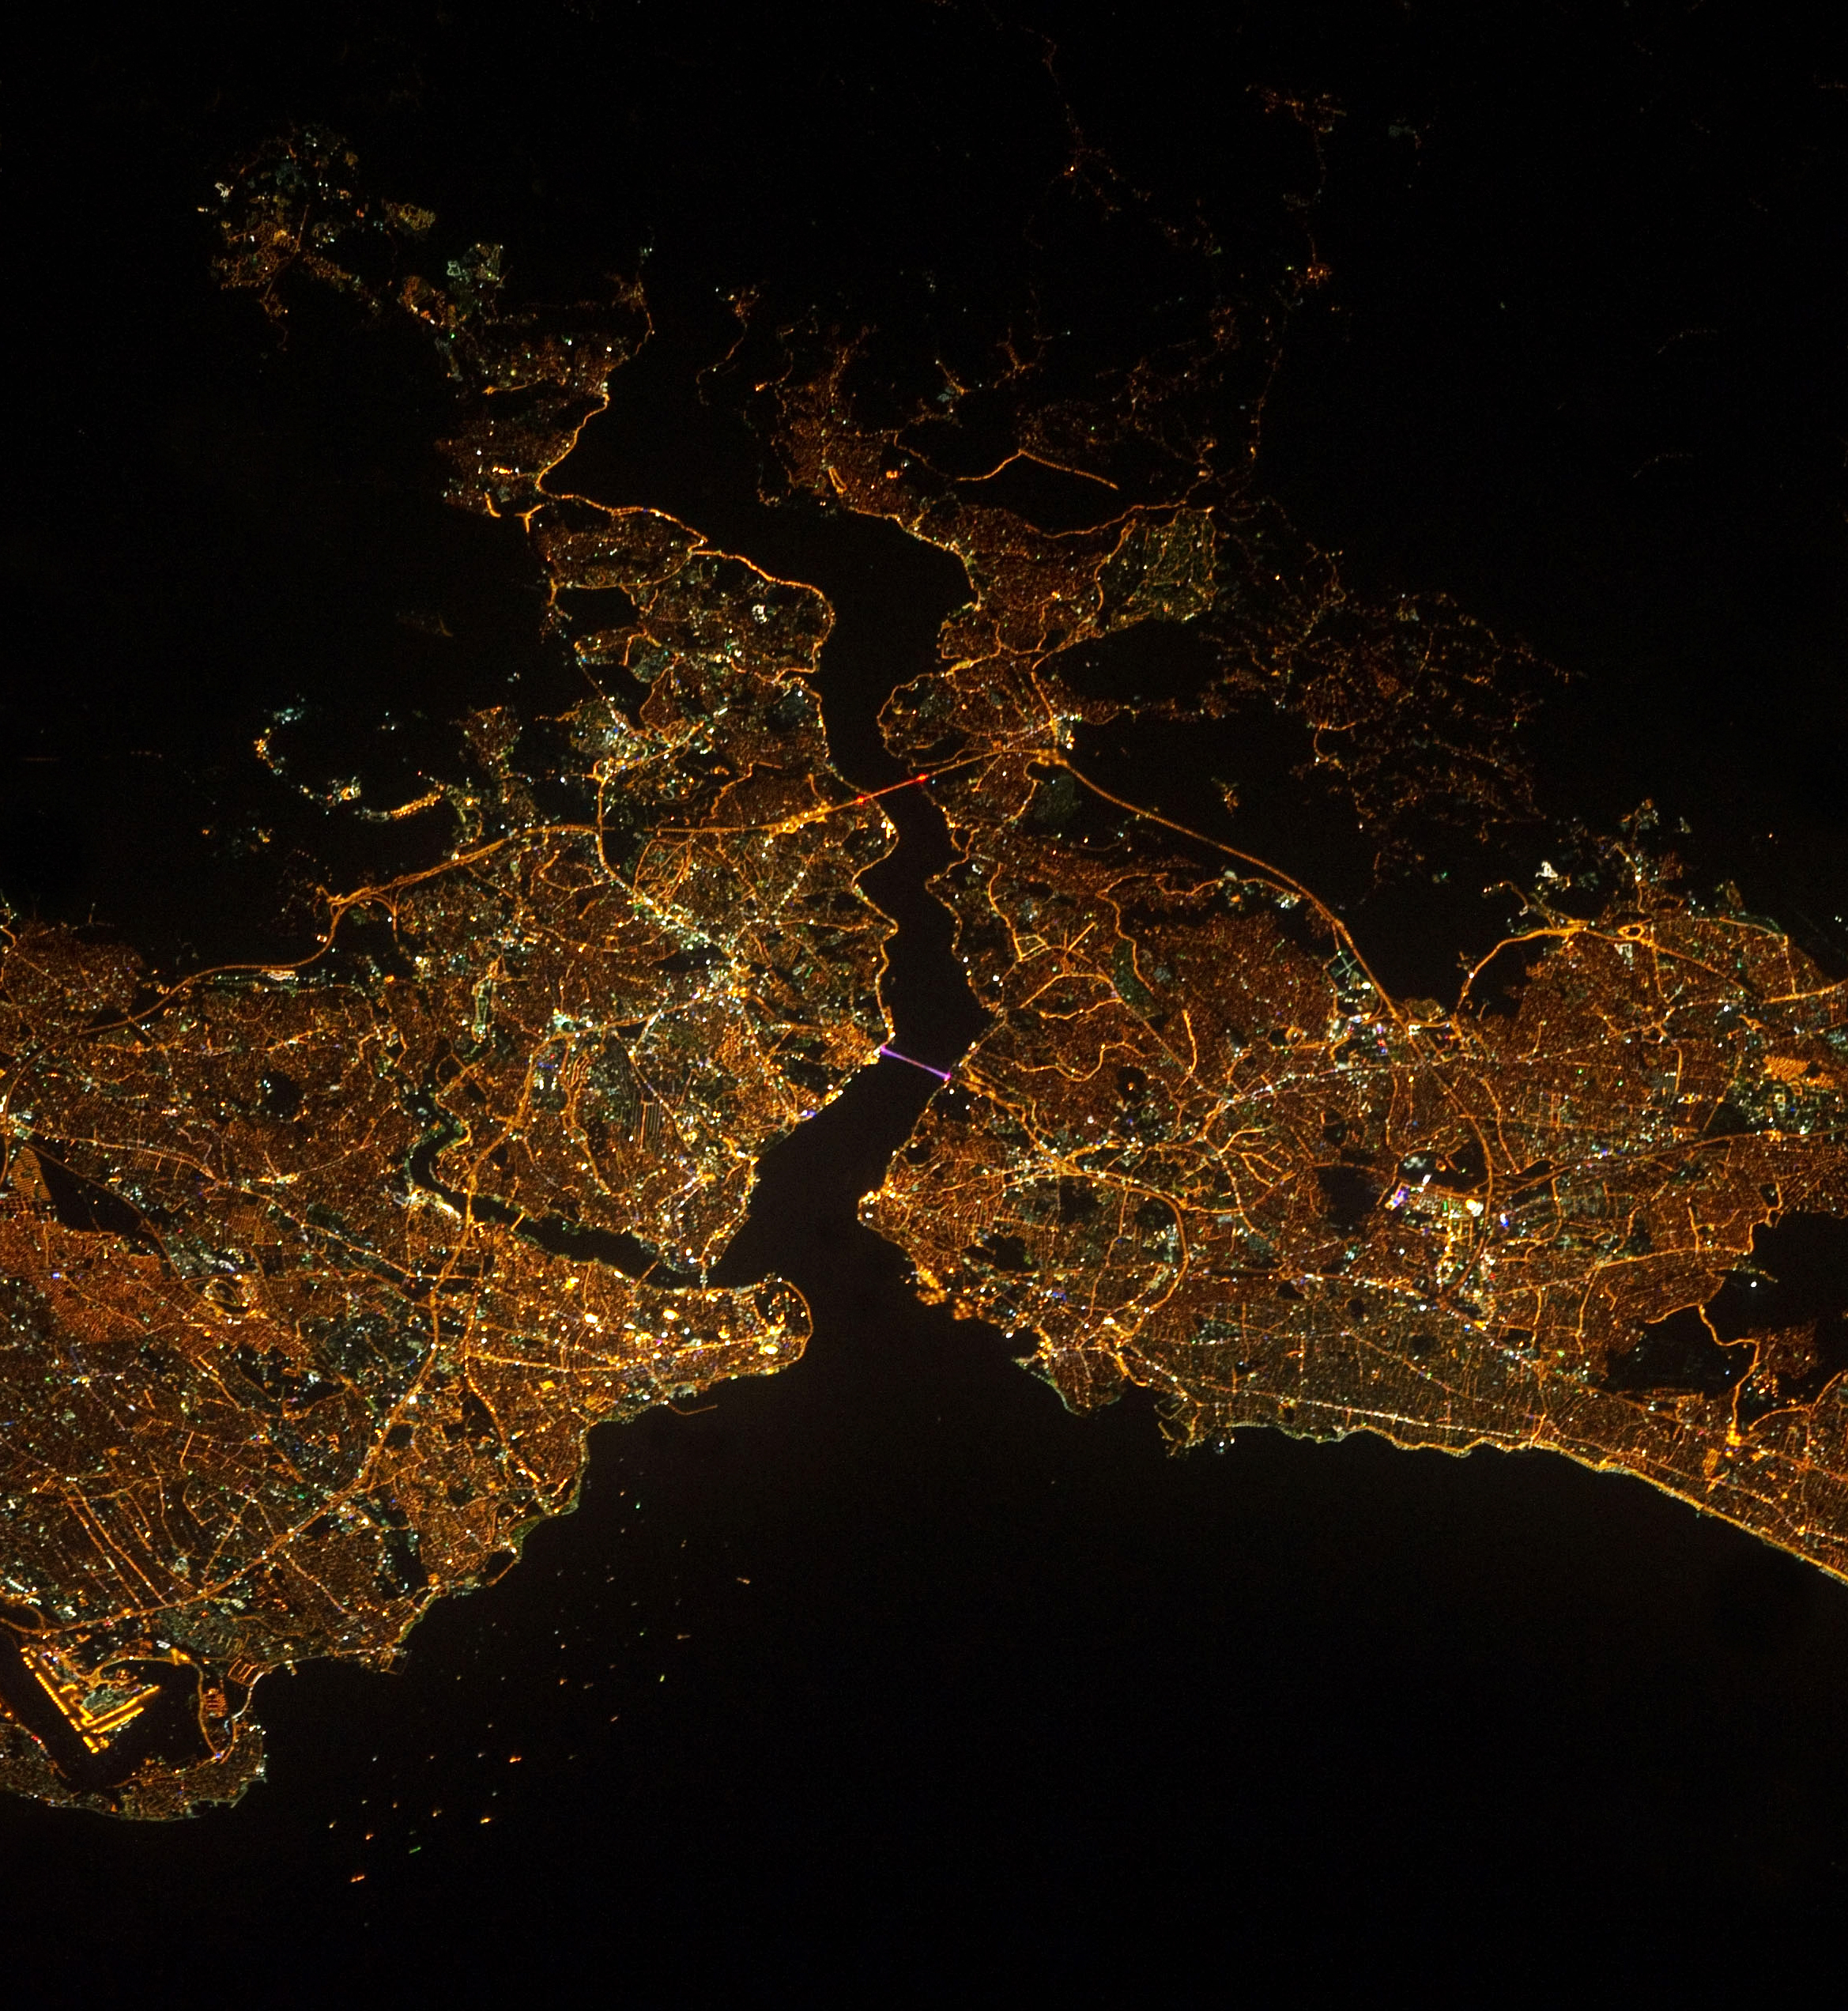 Our thoughts are with the people of Istanbul today, following a gruesome terrorist attack that took place yesterday at the city's main airport. Istanbul is the largest metropolitan area in Turkey, with a population of more than 14 million people. This Overview was captured at night from the International Space Station and is courtesy of NASA.